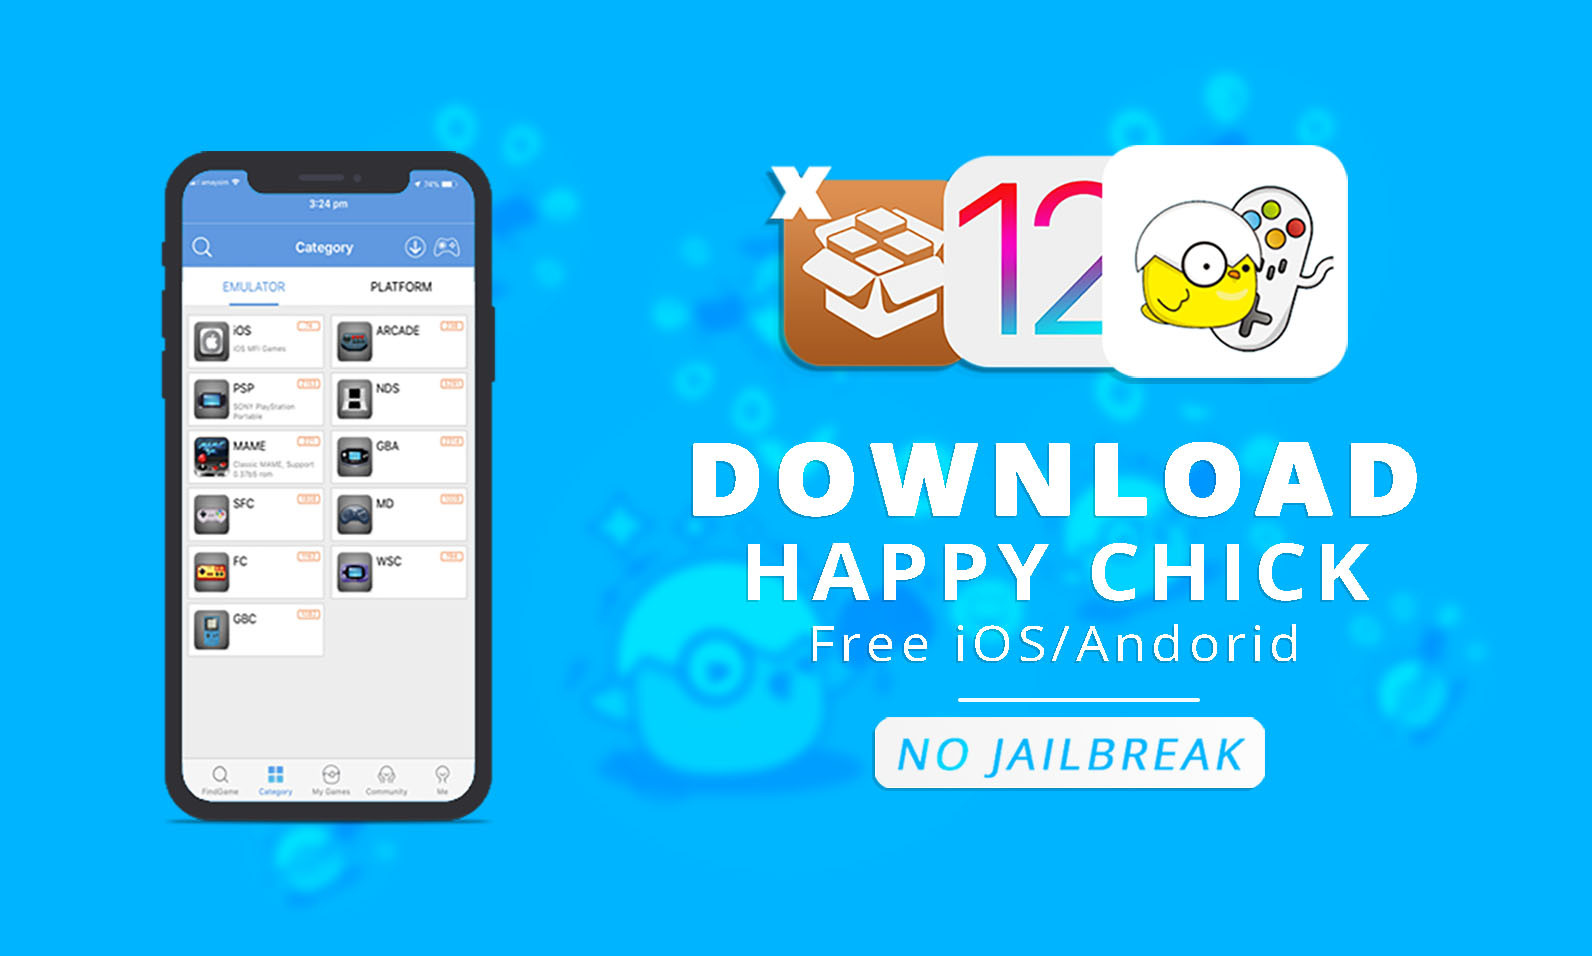 Get Happy Chick Emulator Free With Games on iOS 12.1